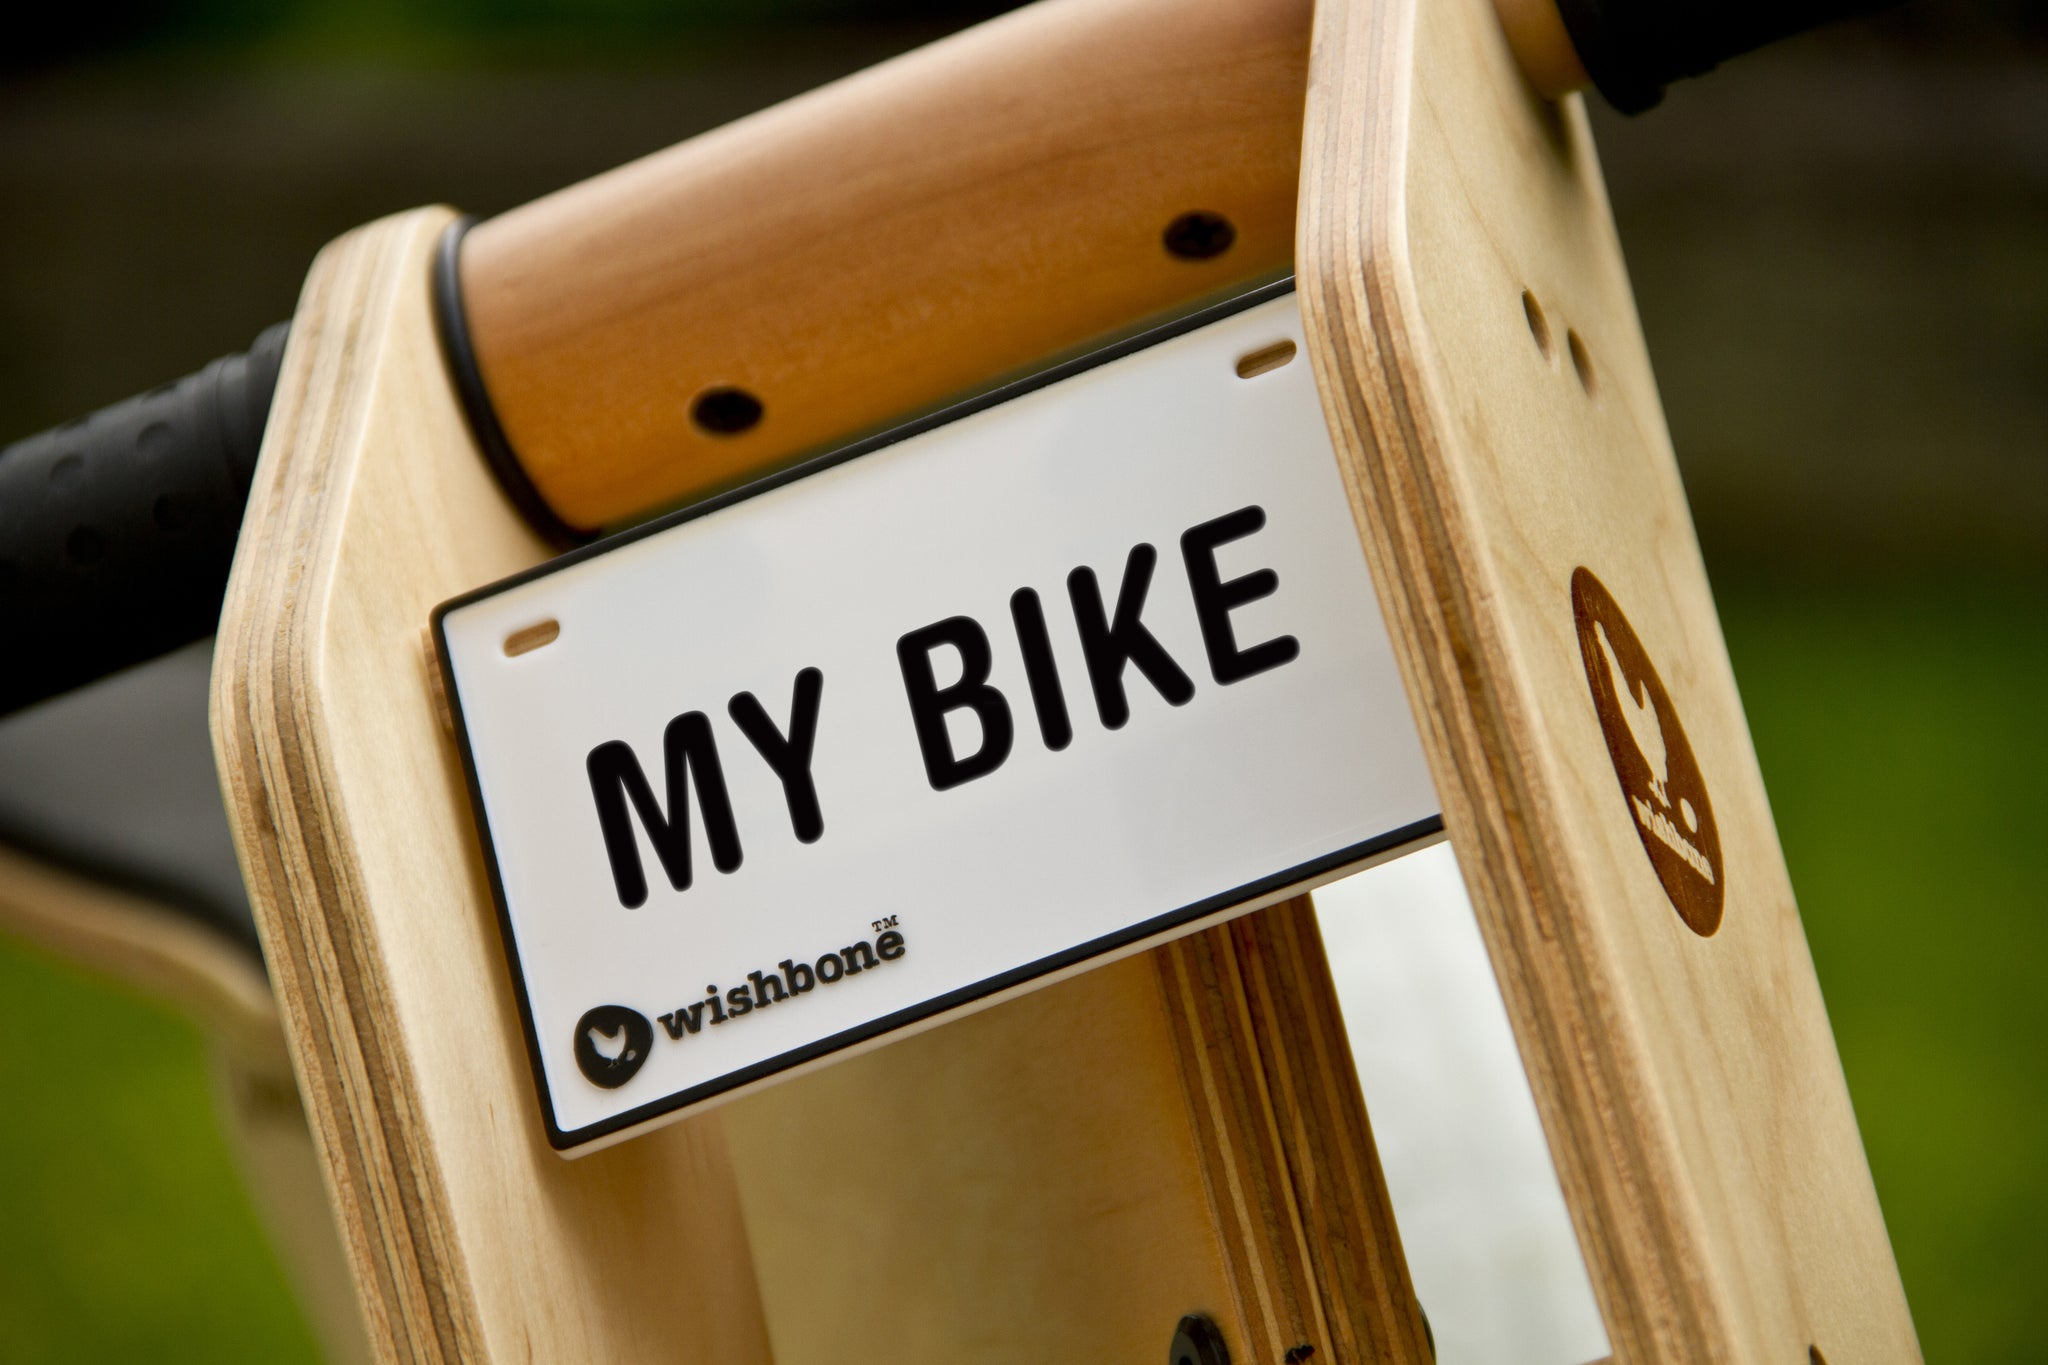 WISHBONE BIKE - name plate